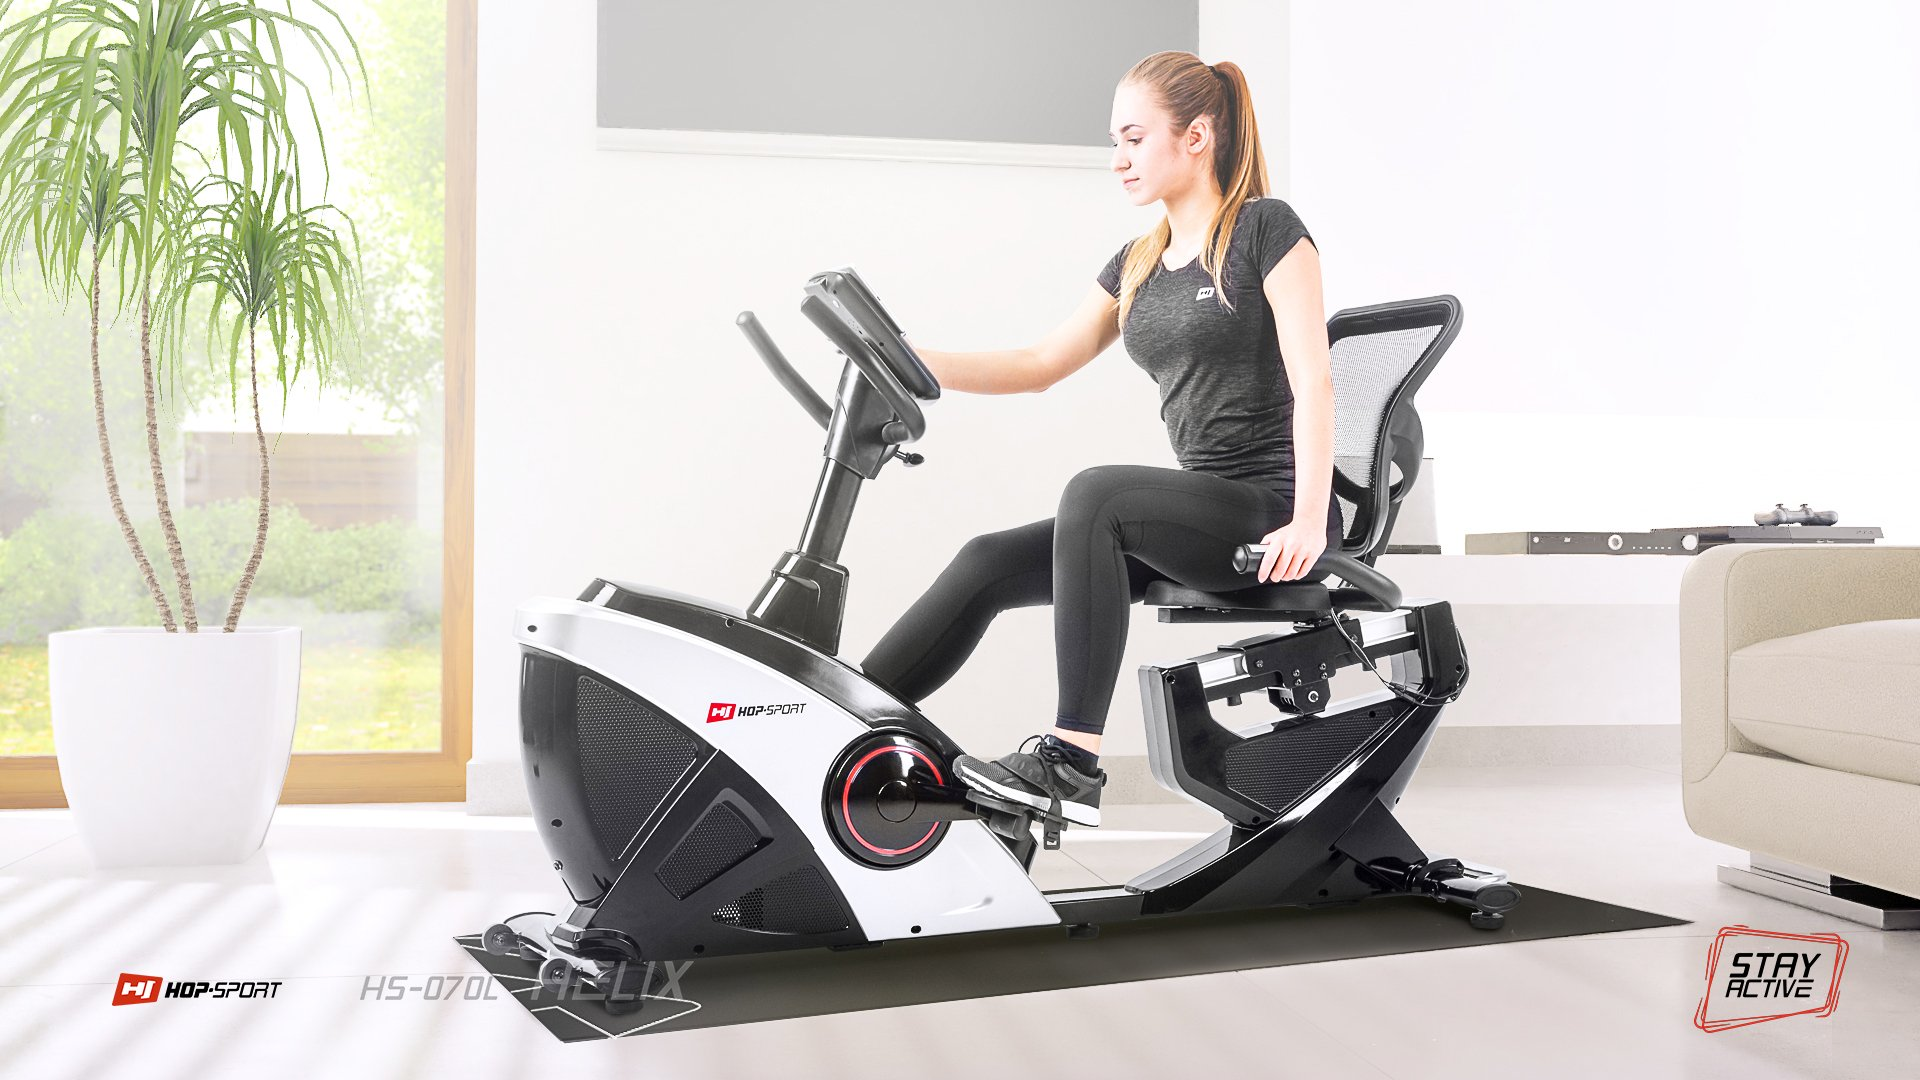 Rower poziomy HS-070H Helix